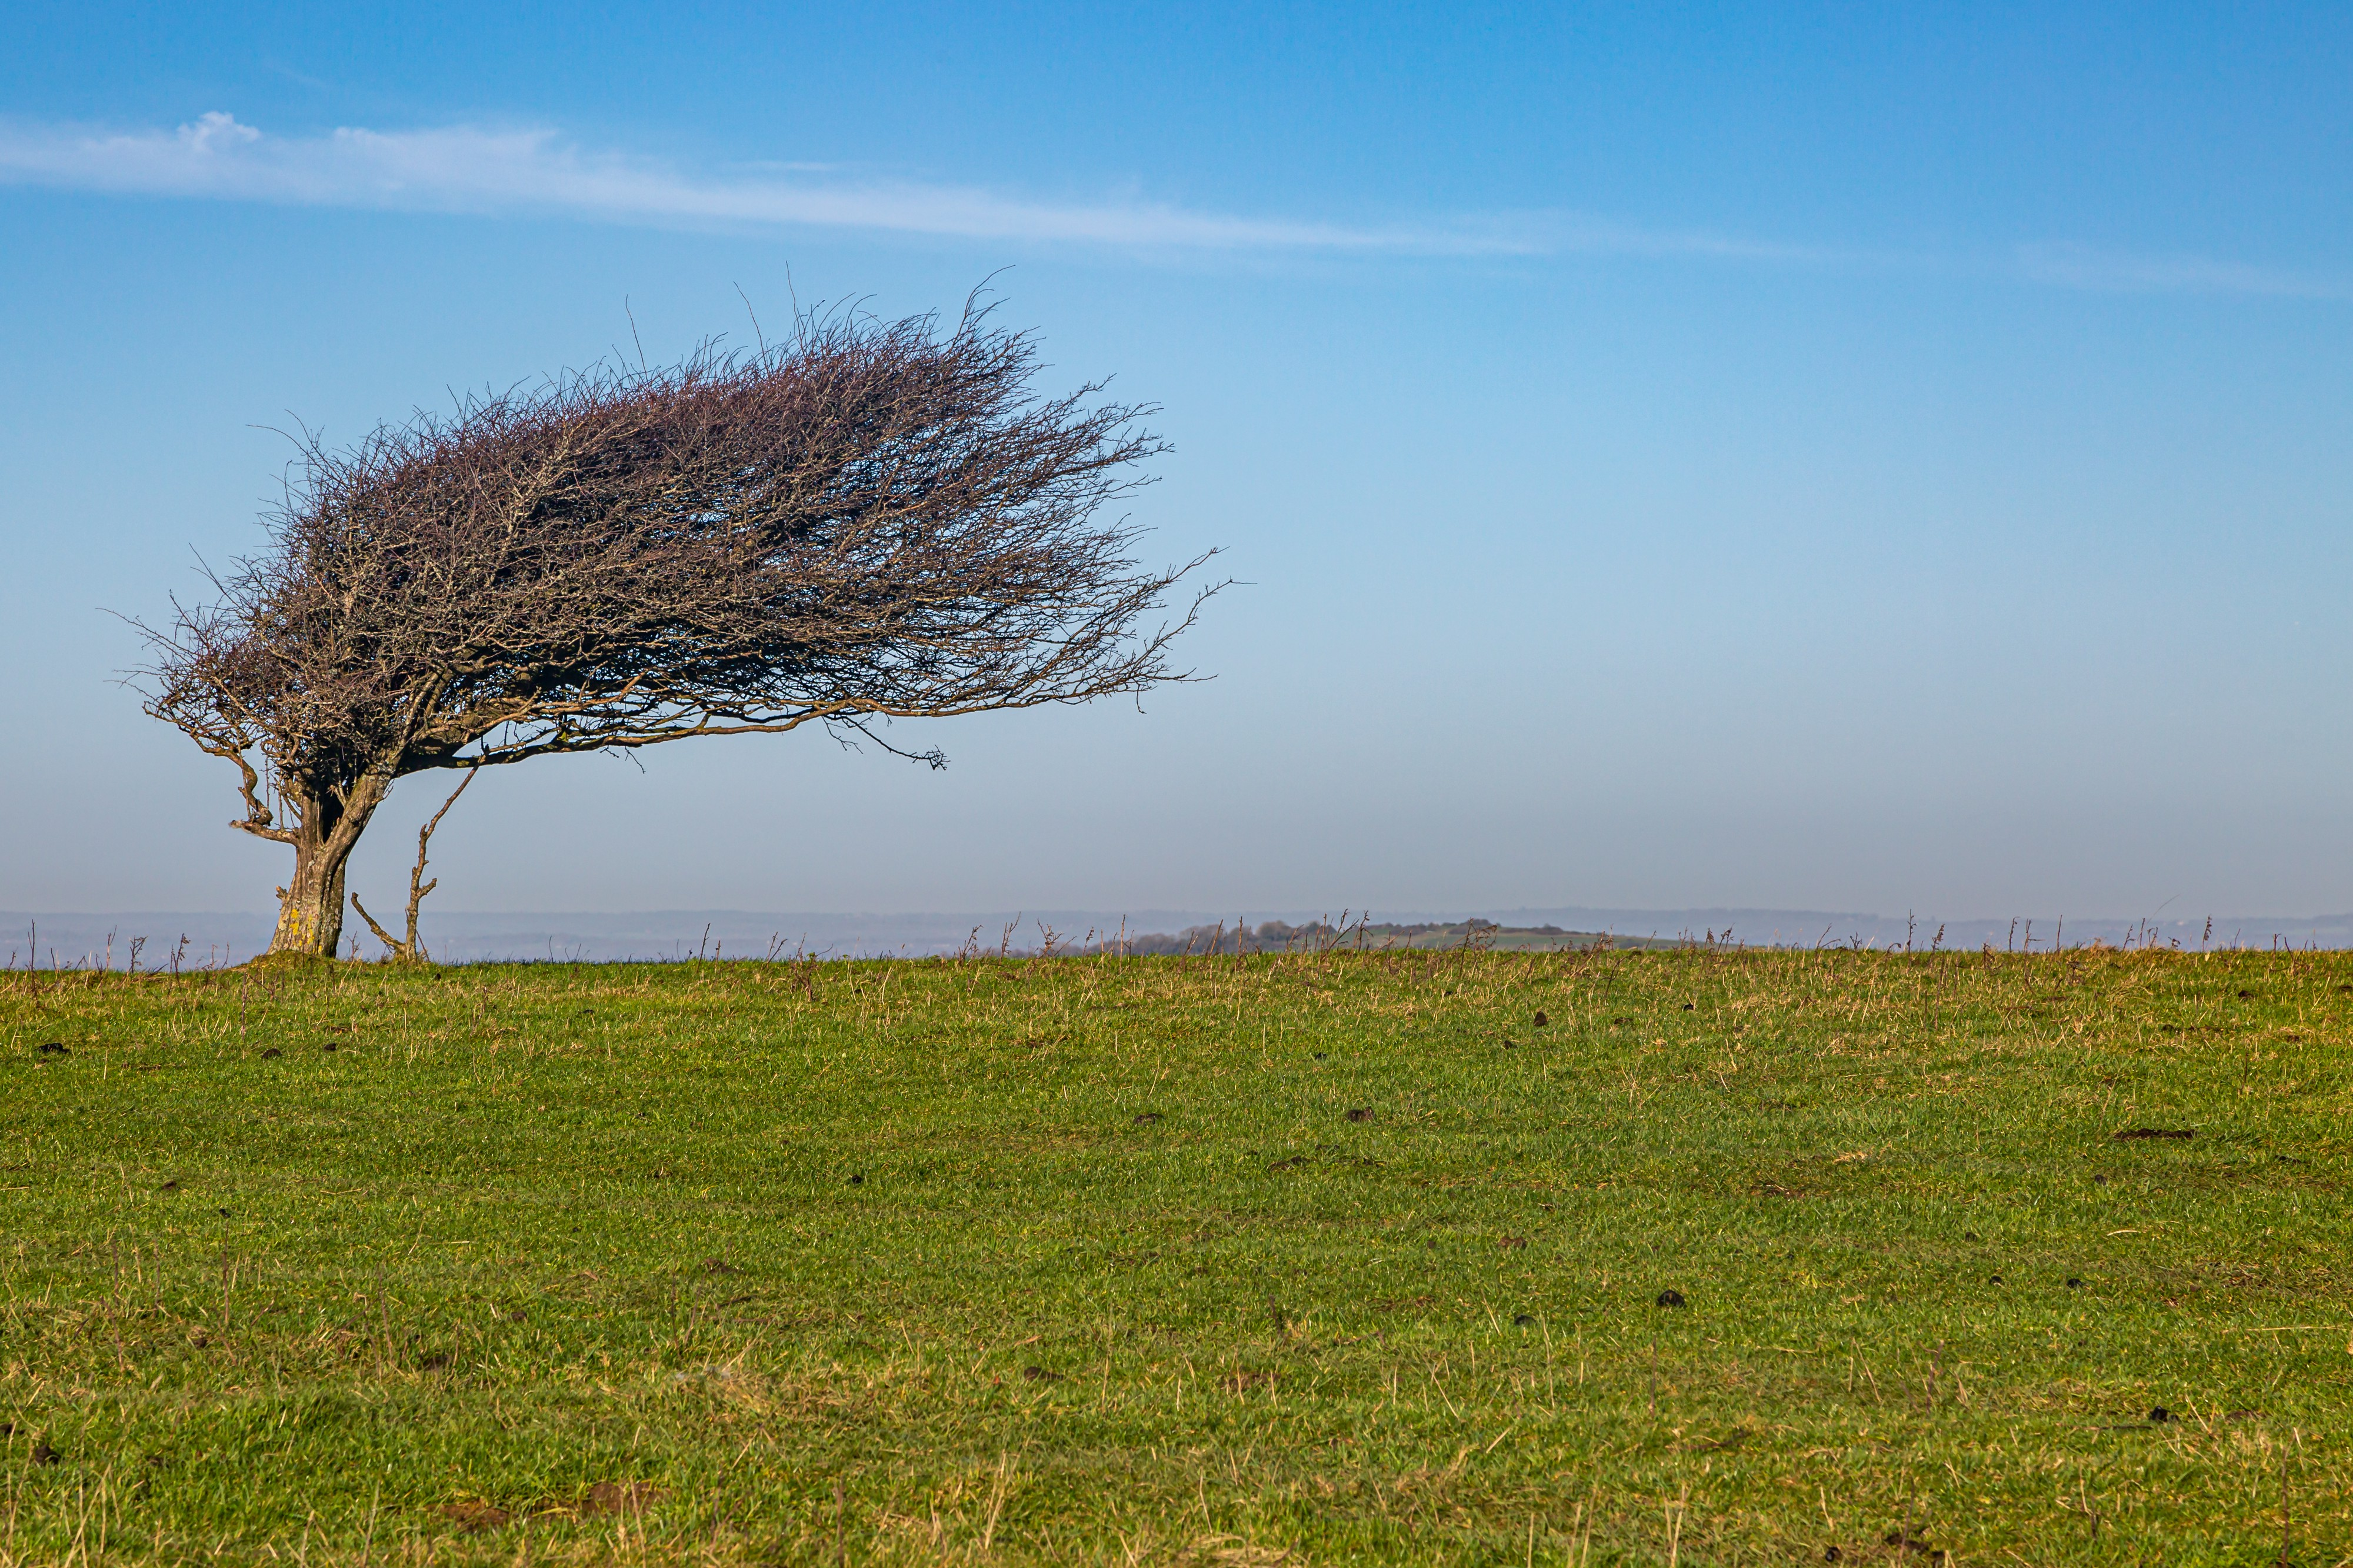 A tree shaped by the wind